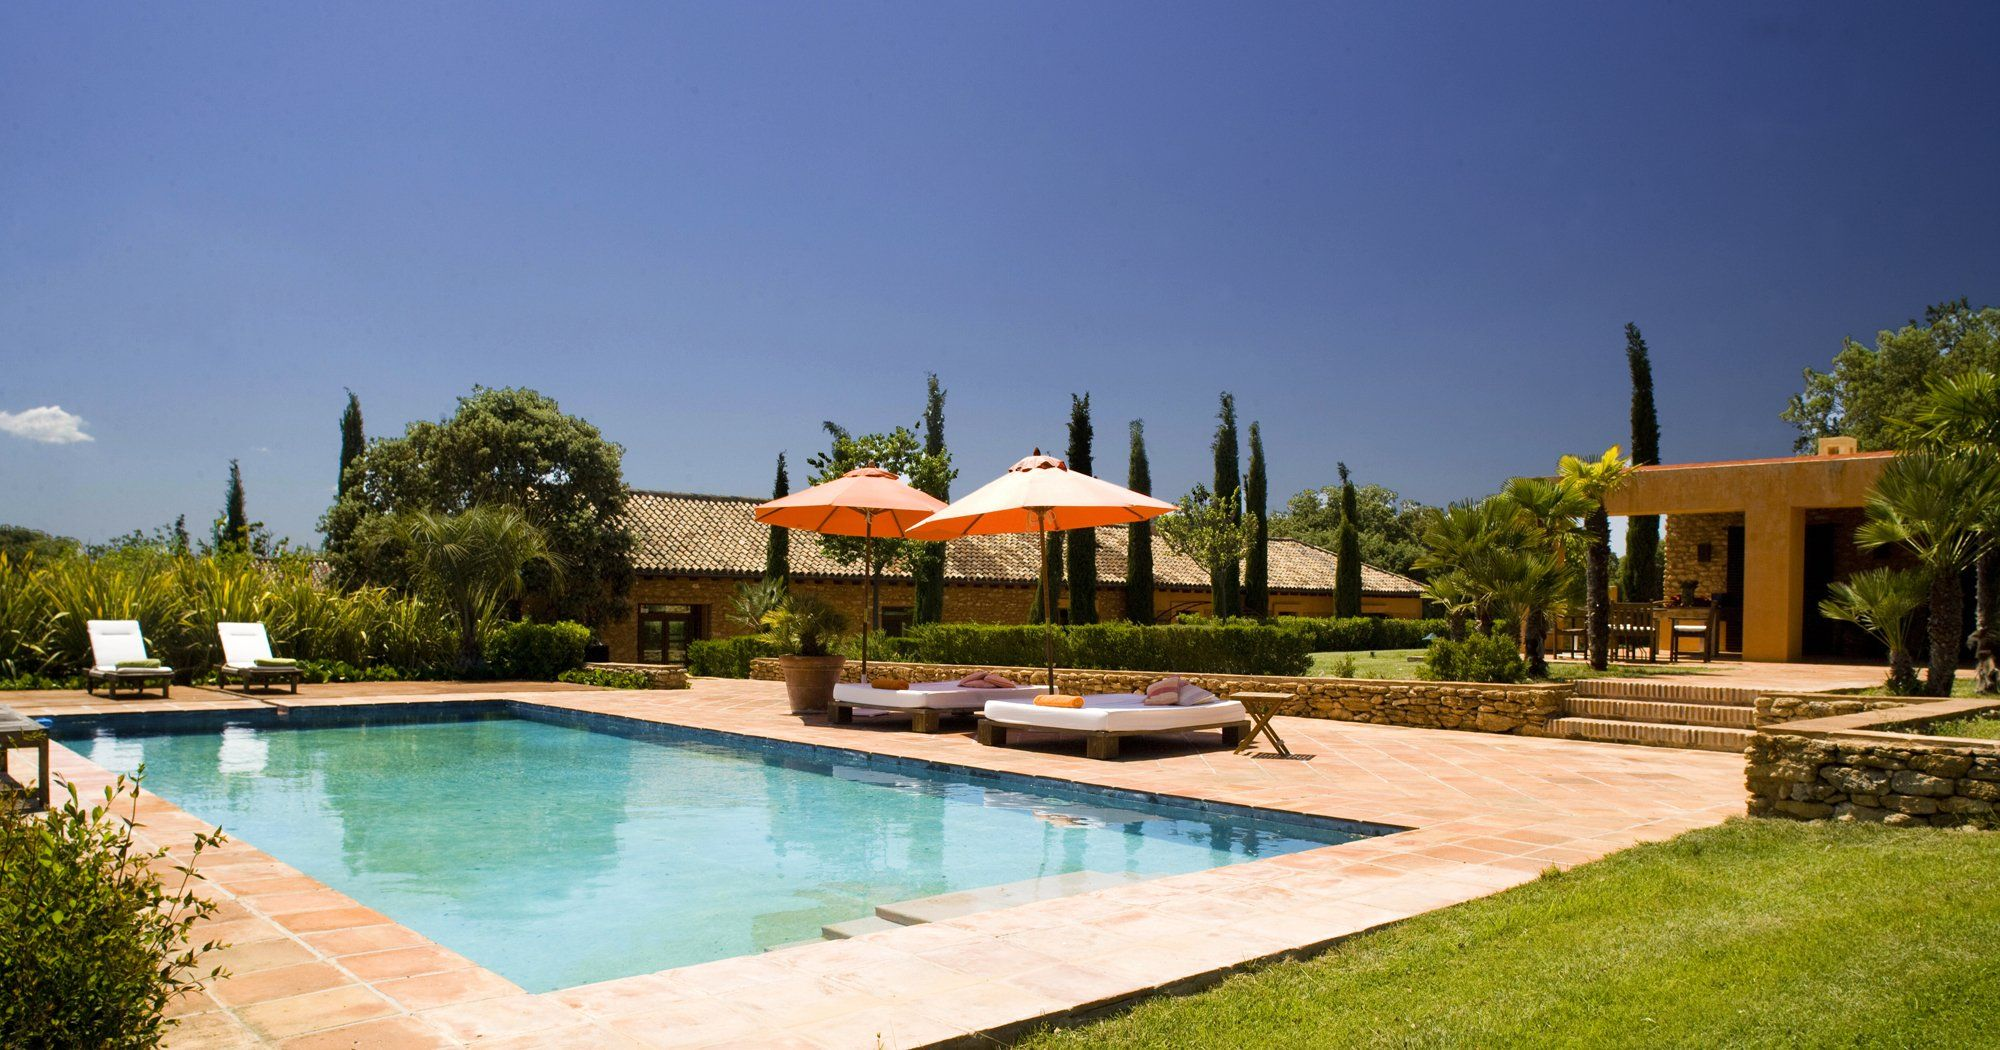 luxury villa ronda andalucia pool